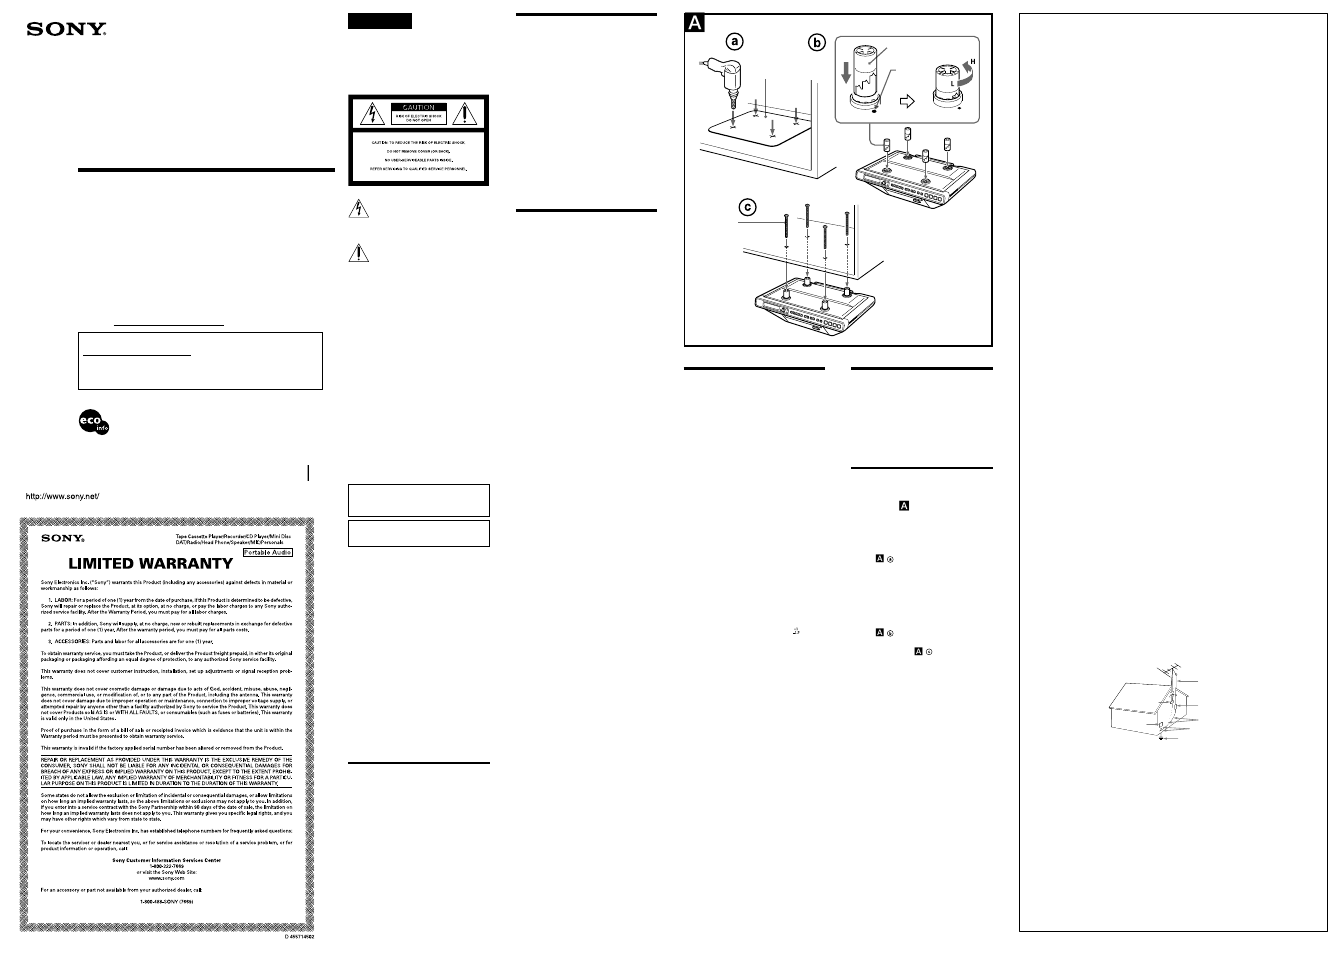 Sony Icf Cd555tv User Manual